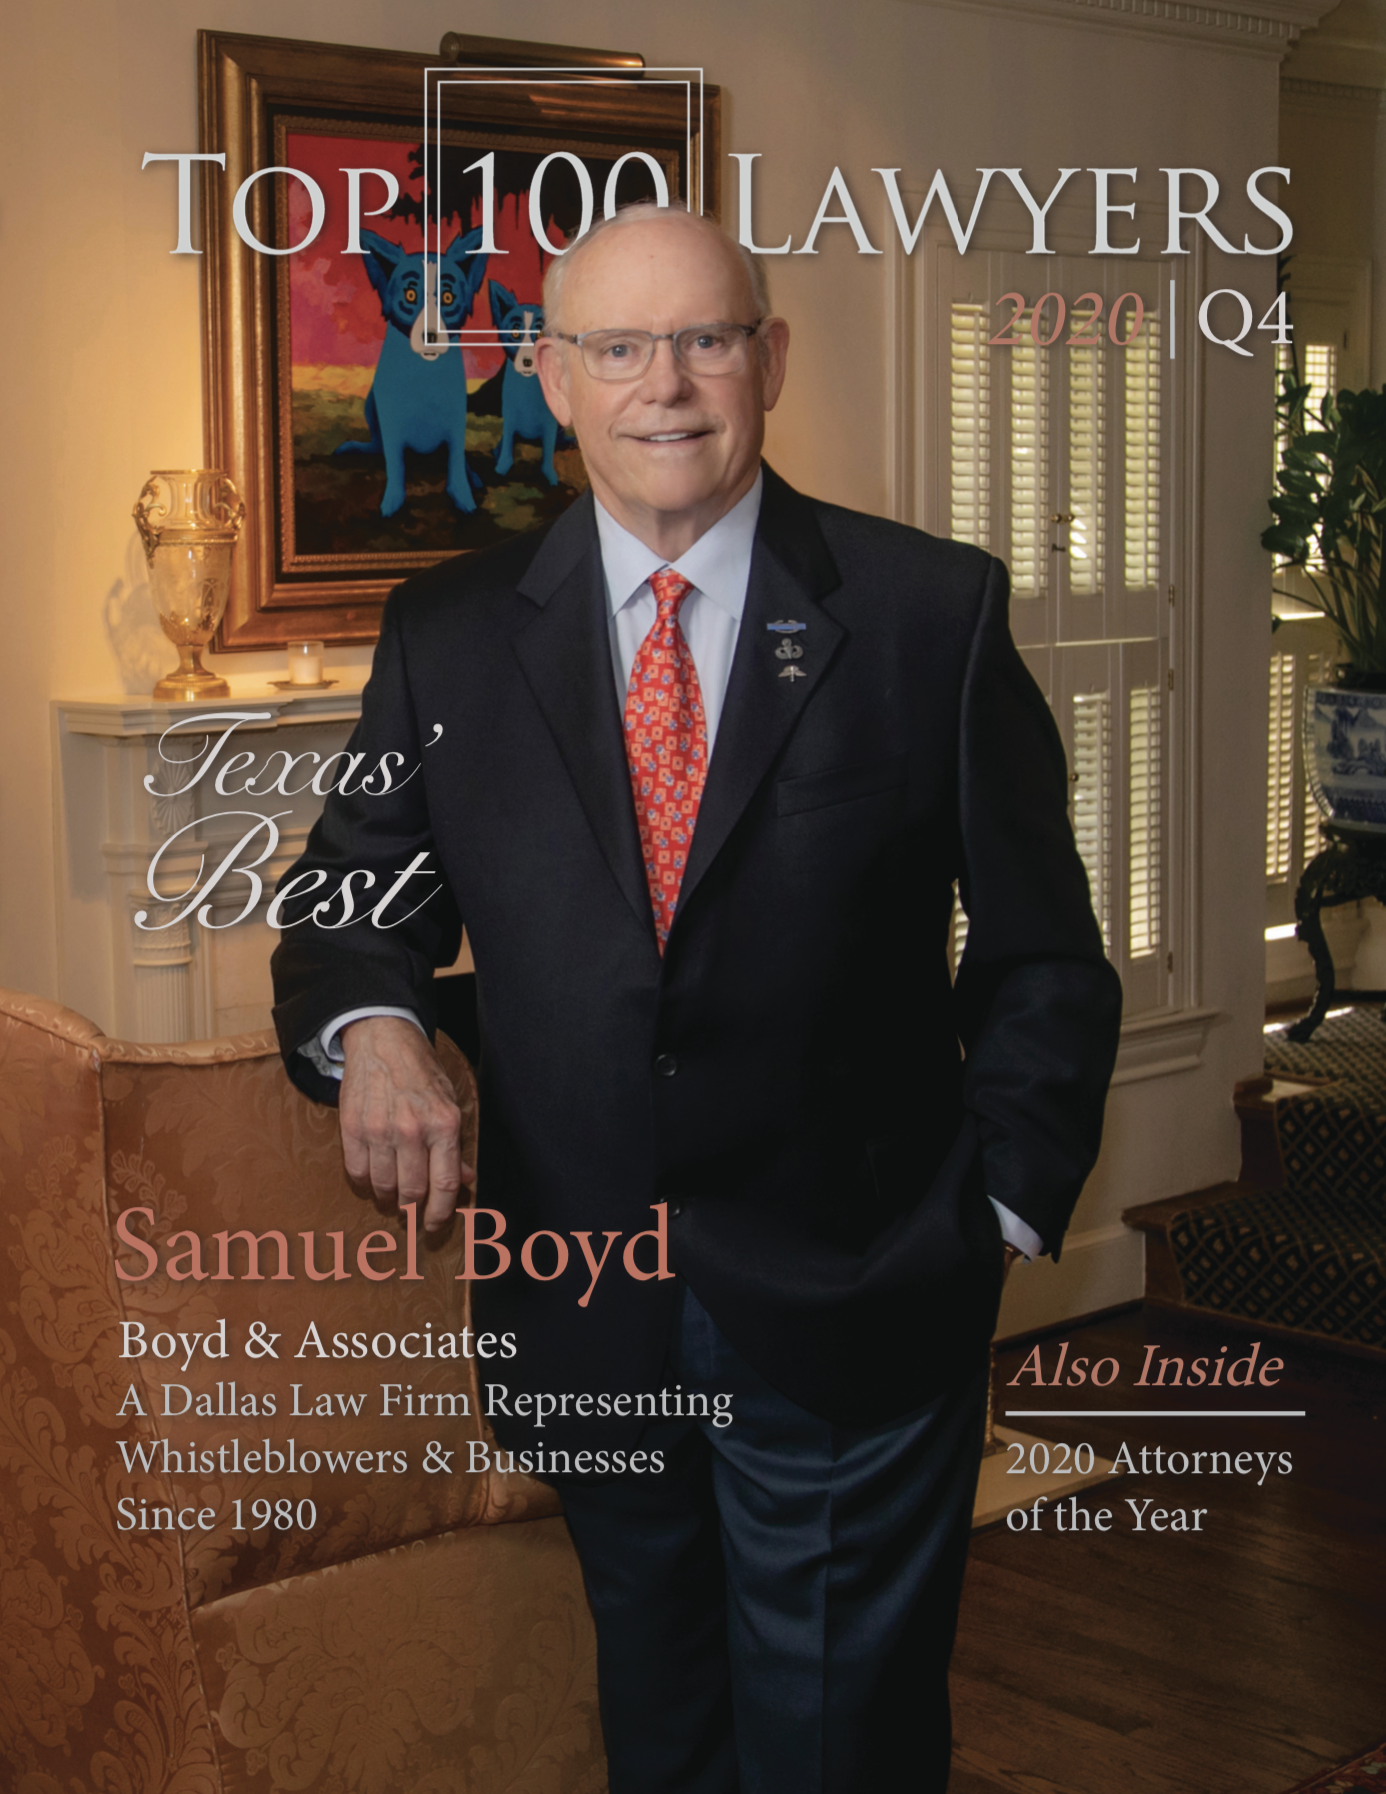 Samuel L. Boyd is Honored by the Top 100 Registry as the 2020 Attorney of the Year, and is Due to be Featured on the Front Cover of  Top 100 Lawyers Magazine's Q4 Edition